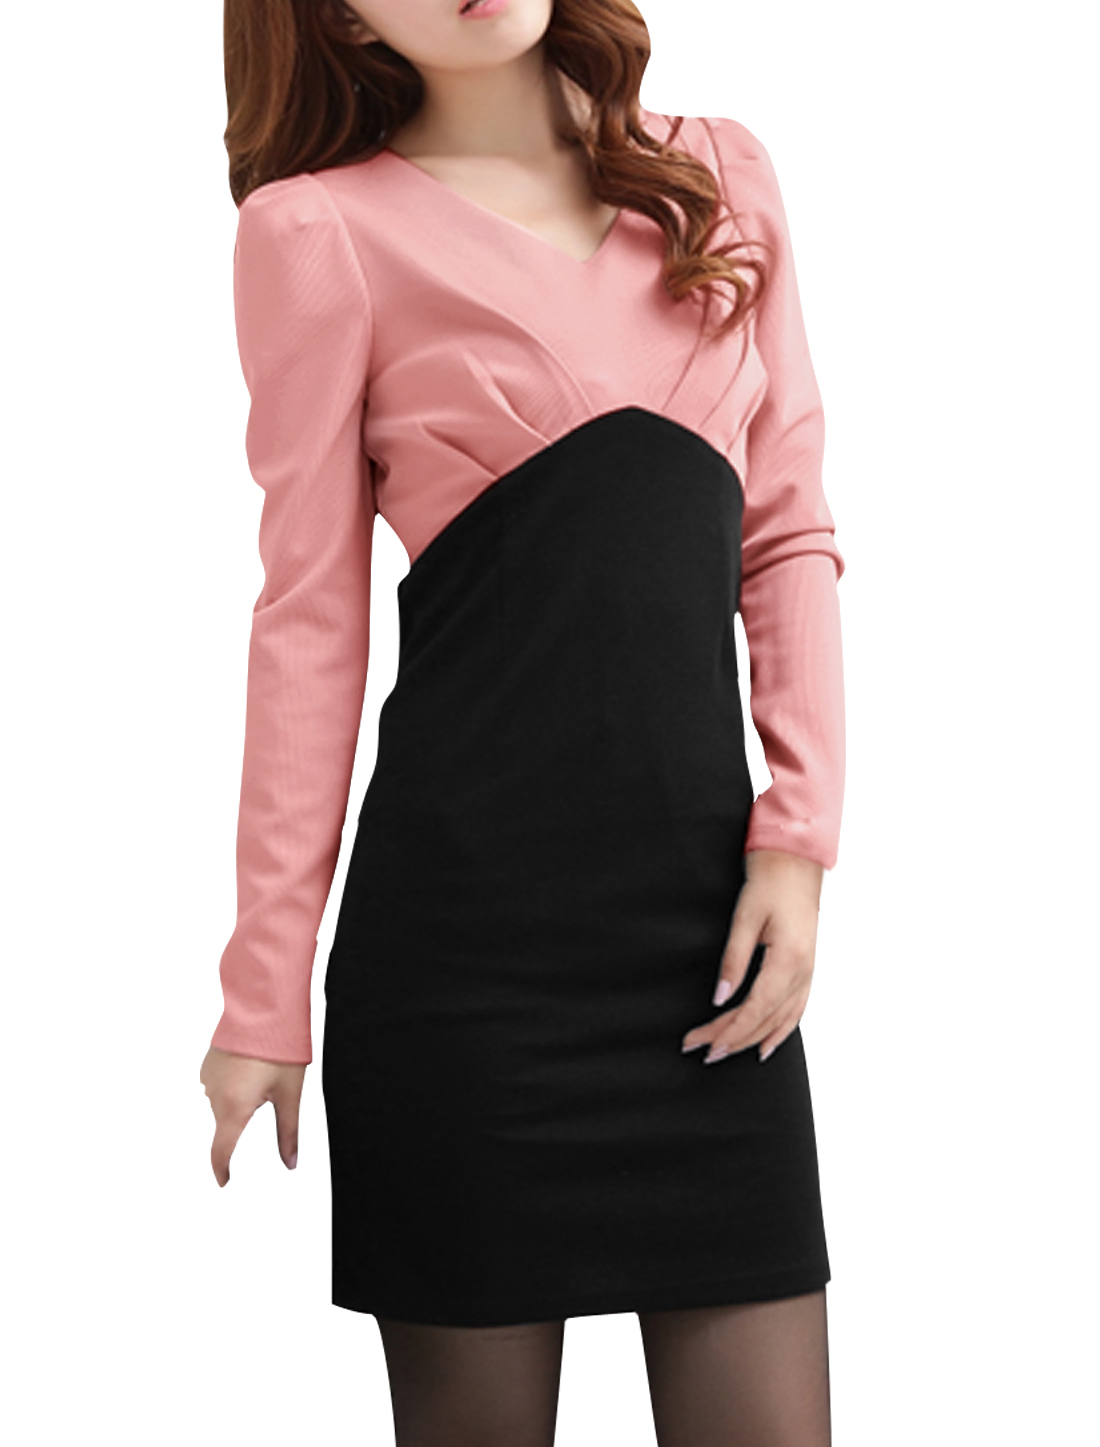 Ladies Chic V Neck Long Sleeve Color Blocking Pink Black Mini dress L